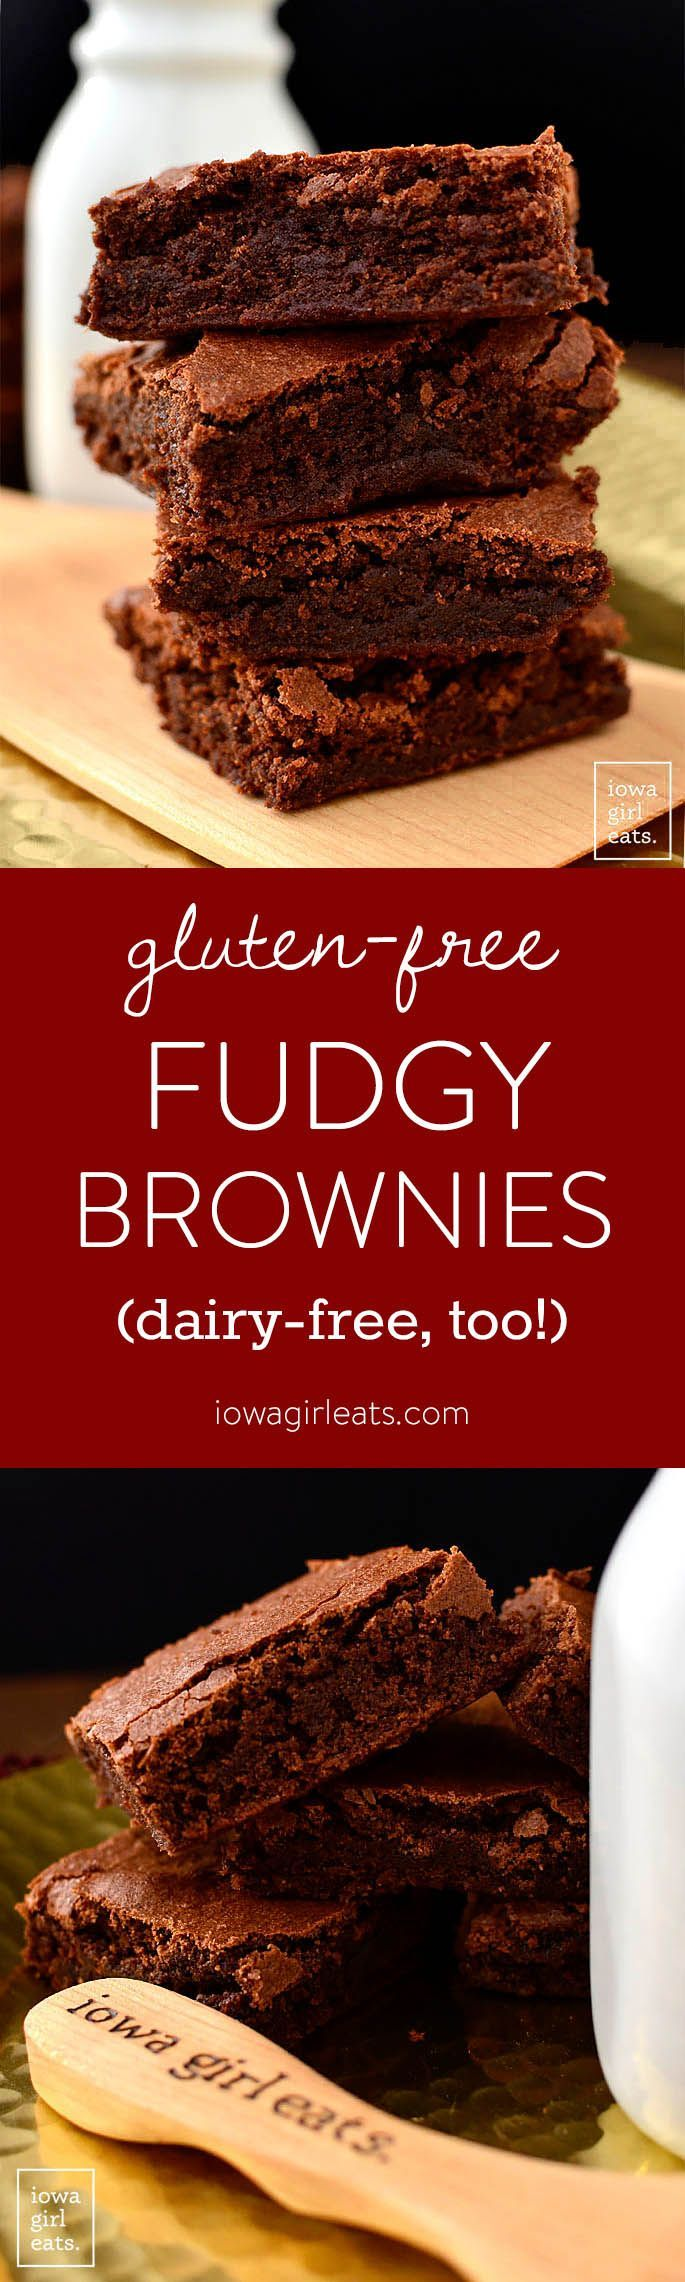 Gluten-Free Fudgy Brownies are the ultimate, dense and chewy brownie. Made in just one bowl, these gluten-free brownies are easily made dairy-free, too!  | iowagirleats.com